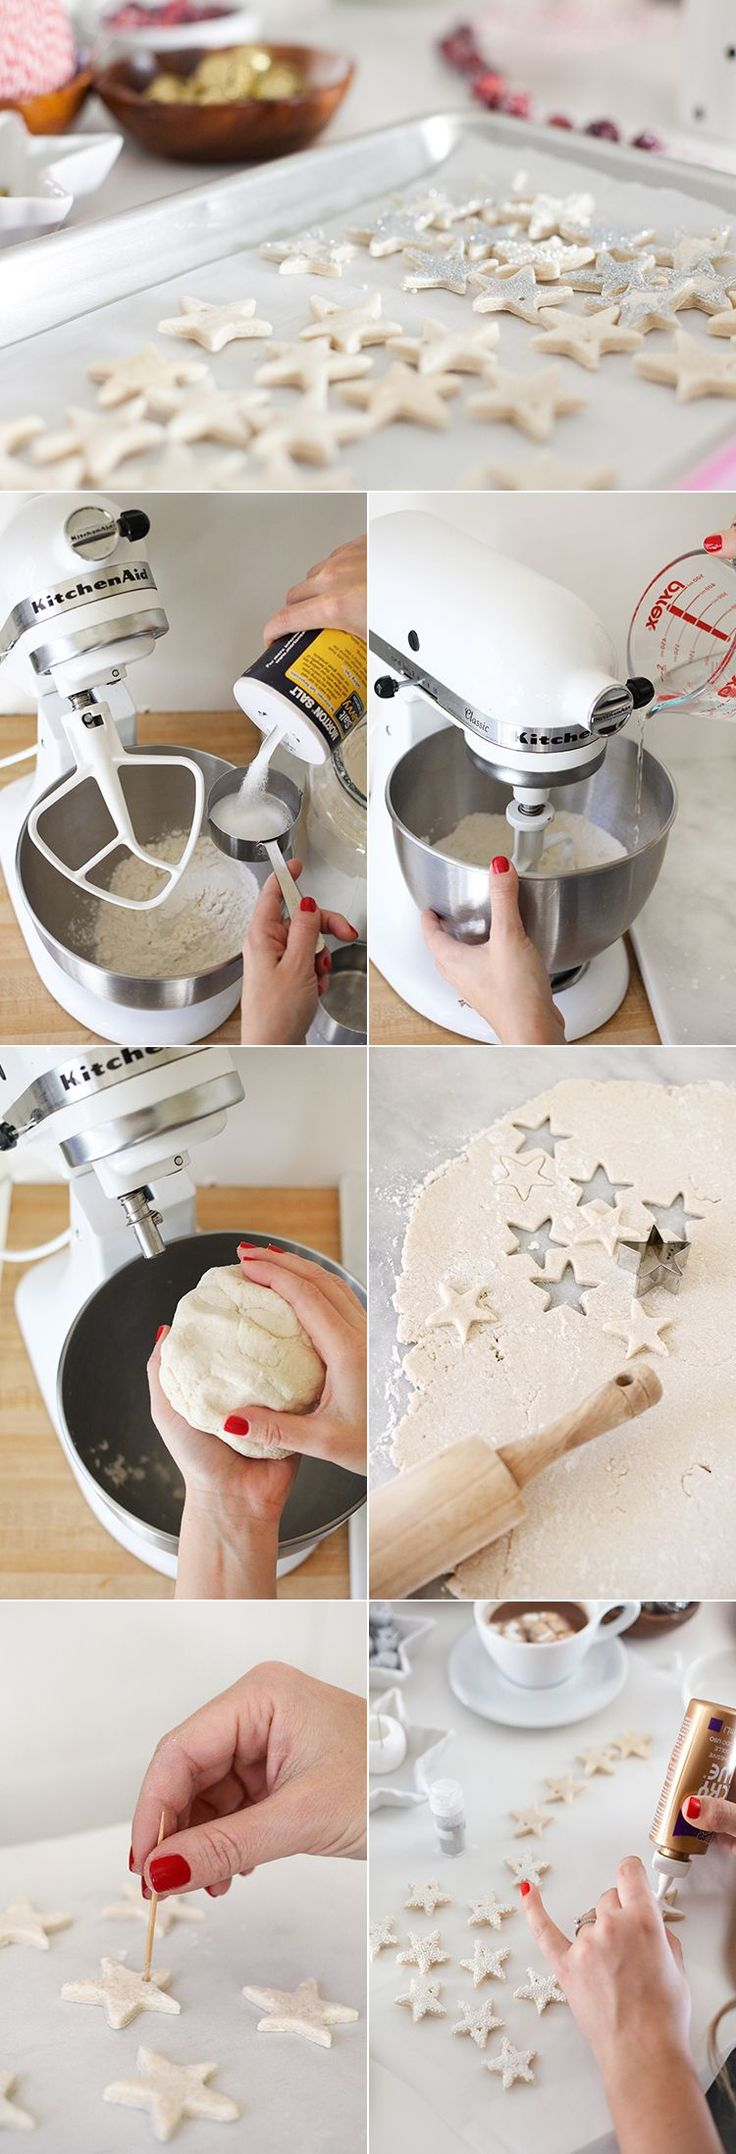 A recipe and instructions for salt dough ornament stars.Ornaments would make a good favor